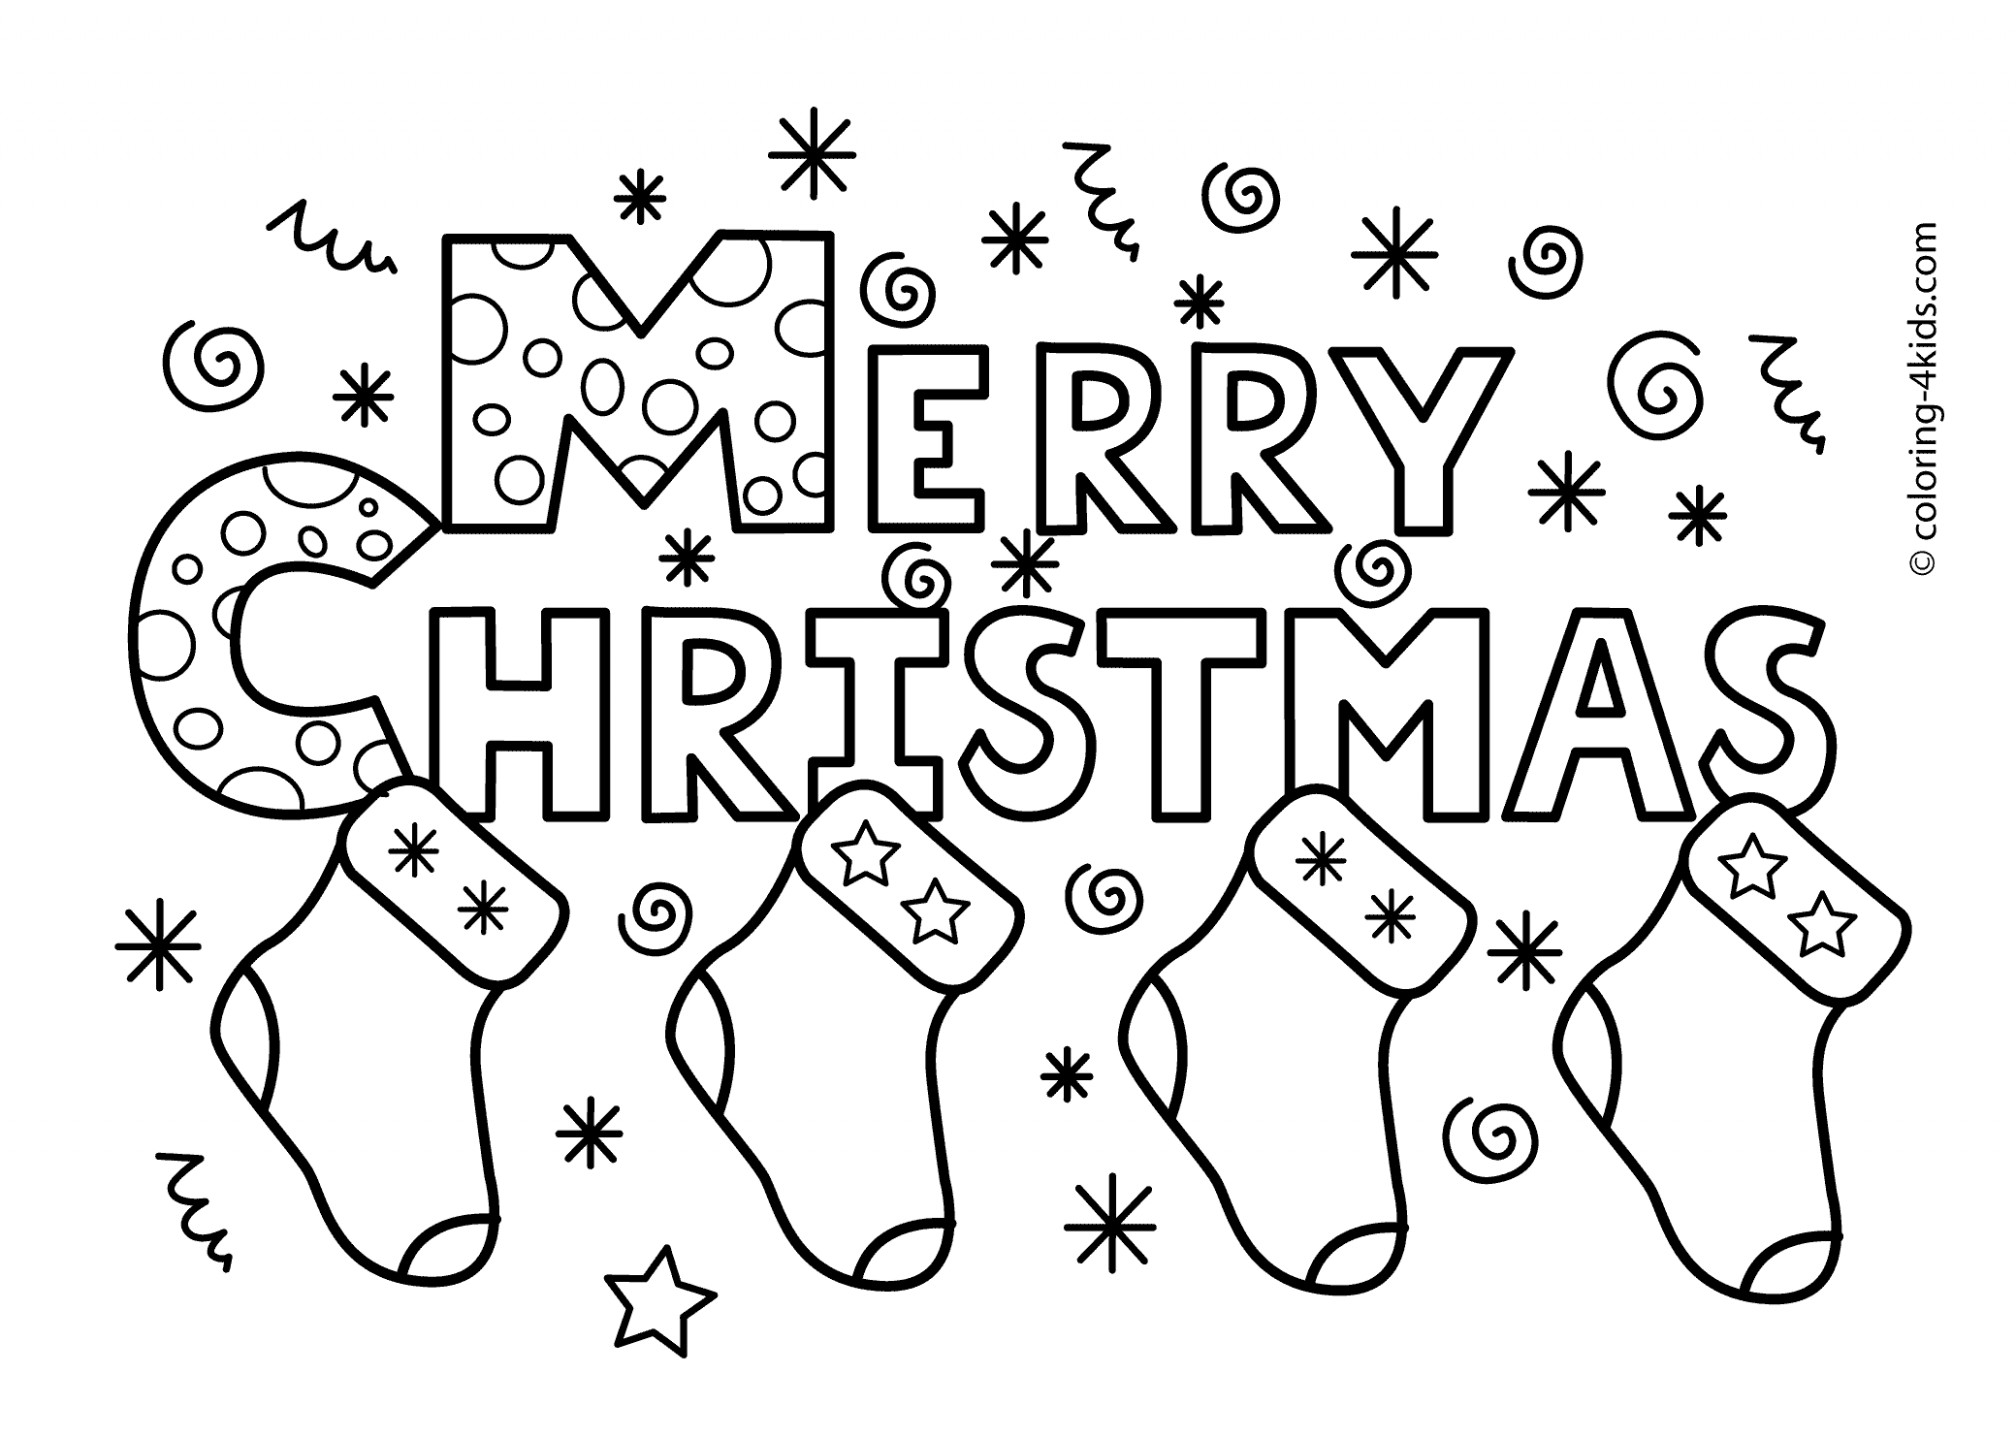 14×14 ho ho ho and happy merry christmas from santa coloring page ..